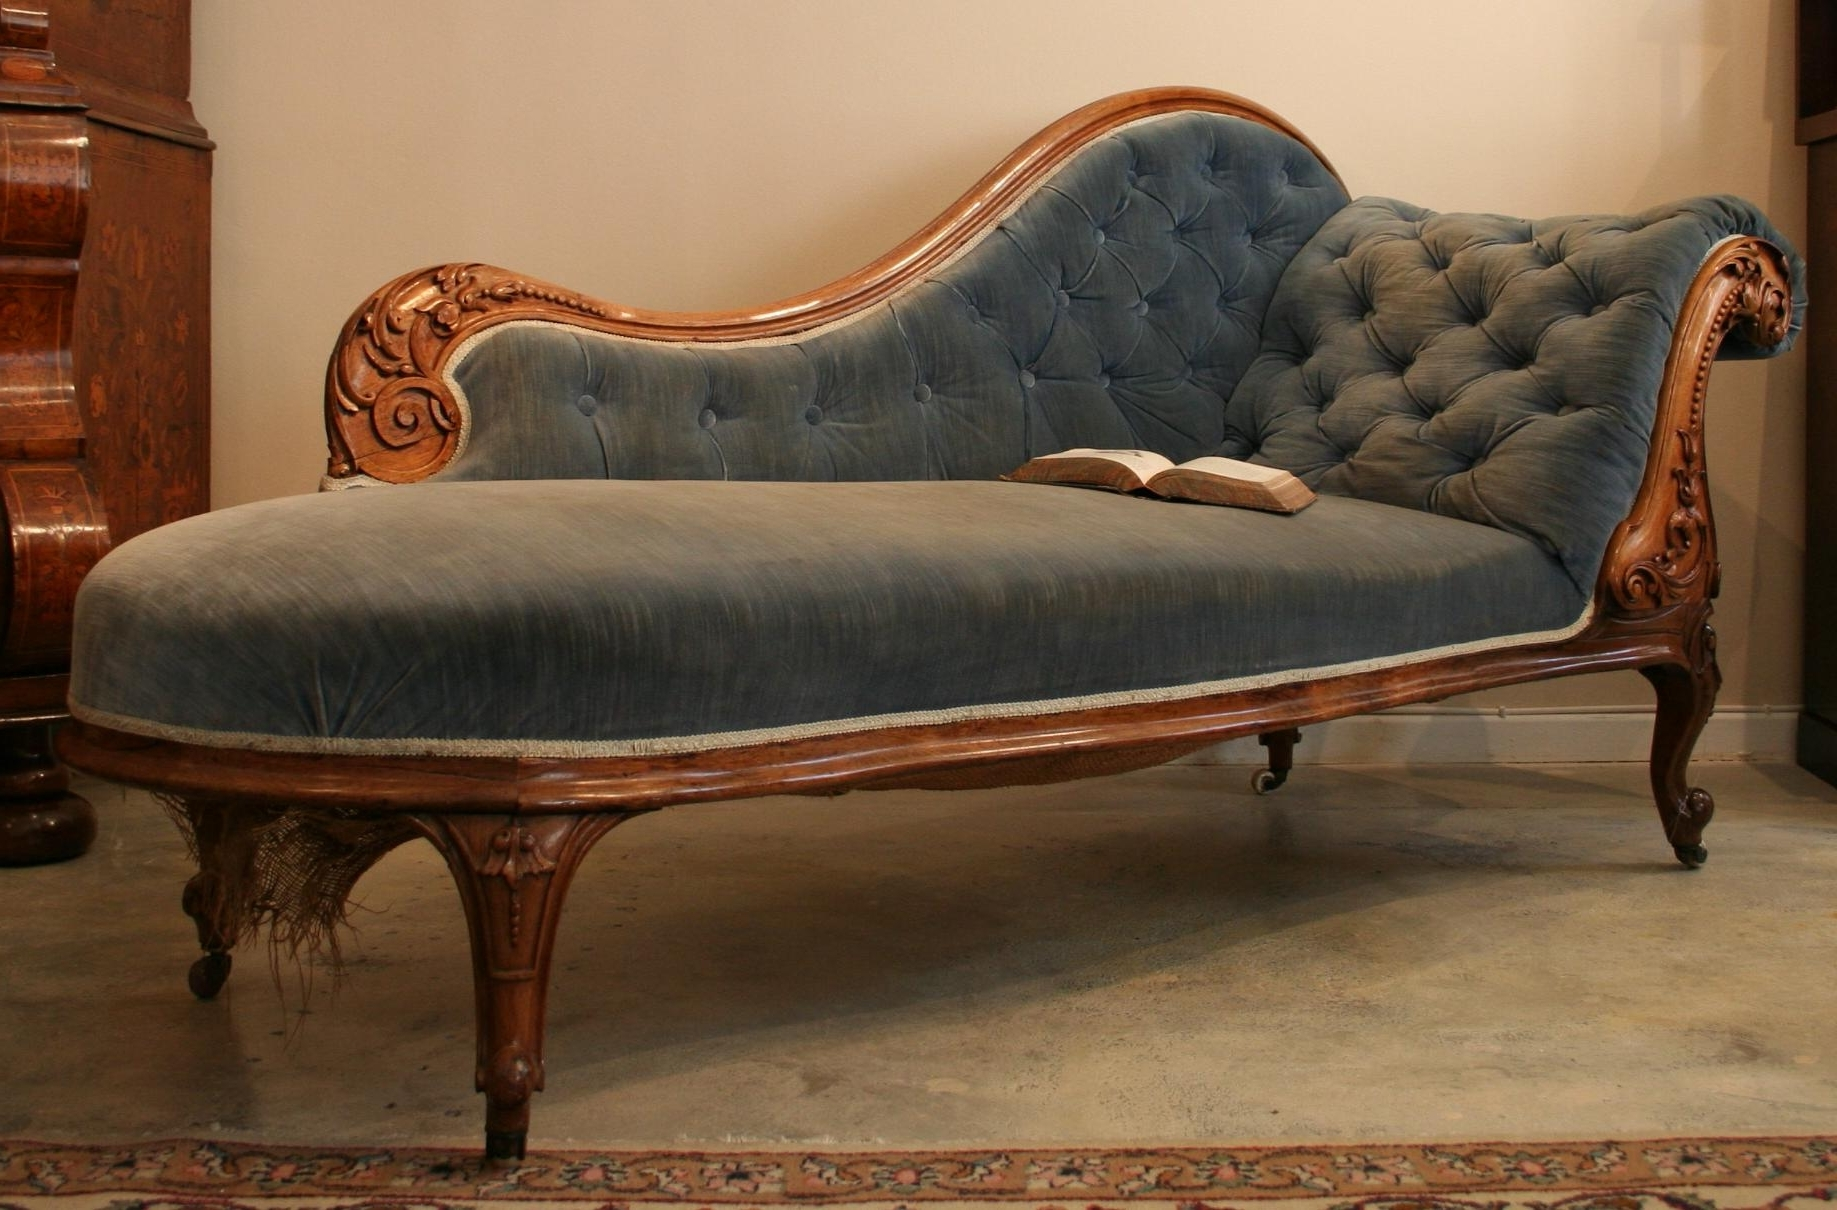 Vintage Chaise Lounge Chairs For Trendy Victorian Chaise Lounge Design – Home Design And Decor (View 4 of 15)